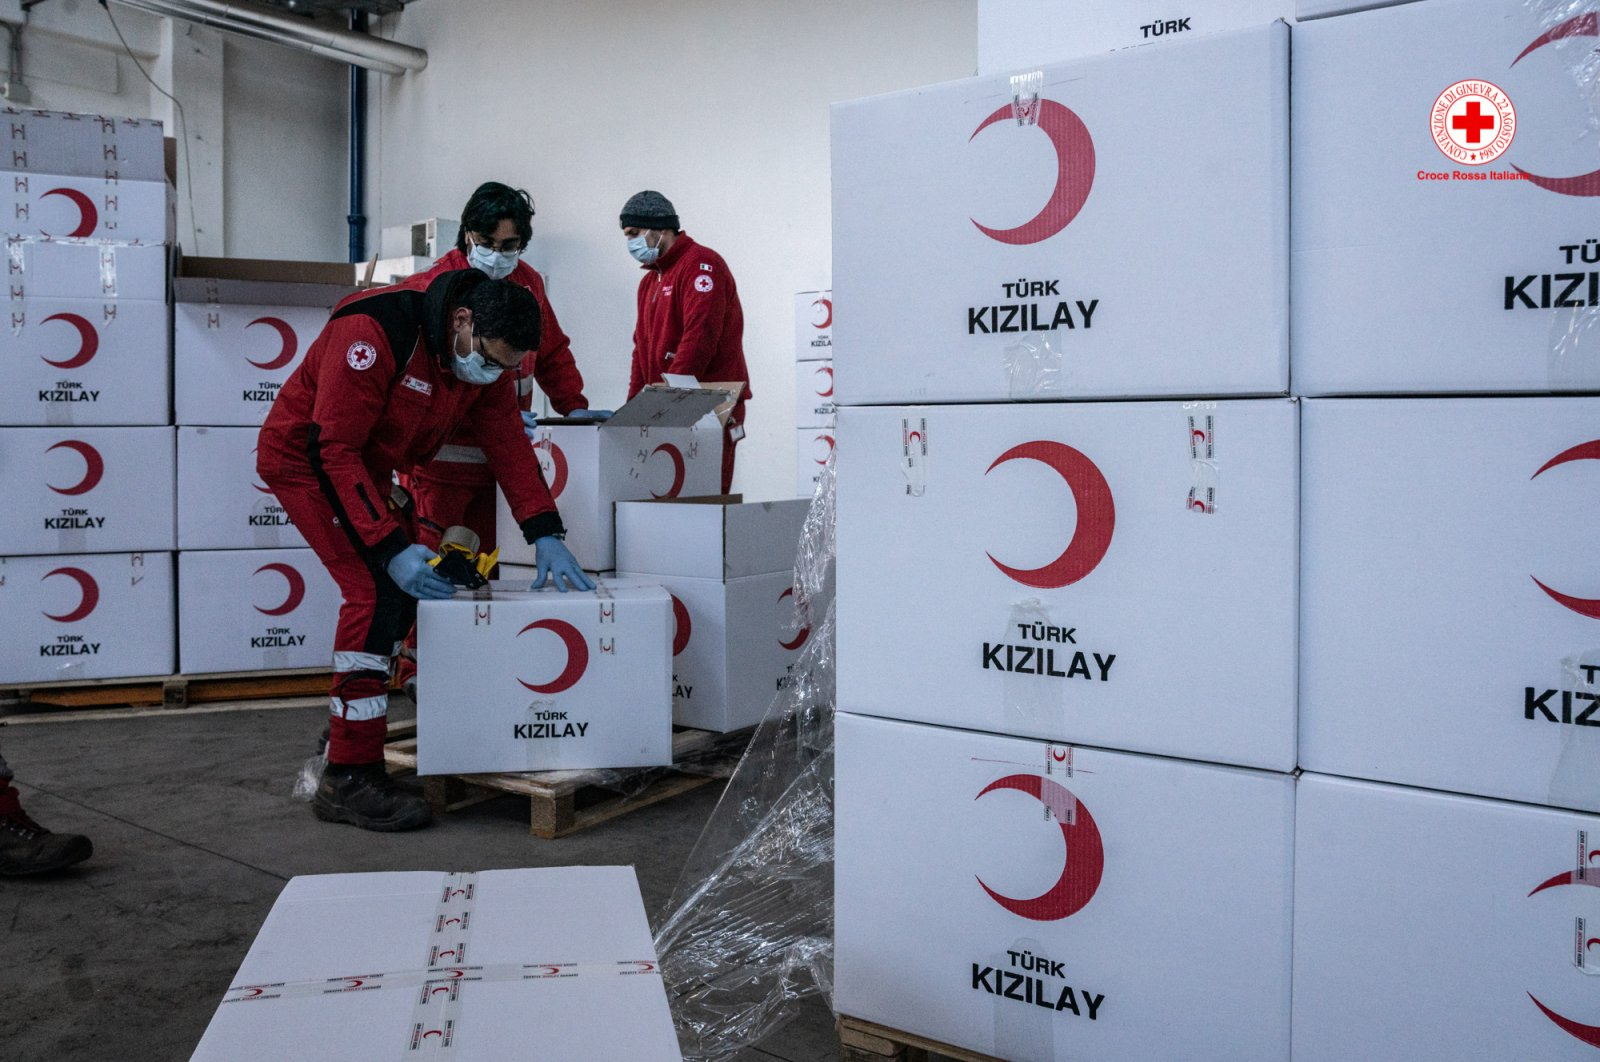 Italian Red Cross workers unpack medical supplies sent by the Turkish Red Crescent in this undated photo. (Photo courtesy of Croce Rossa Italiana)